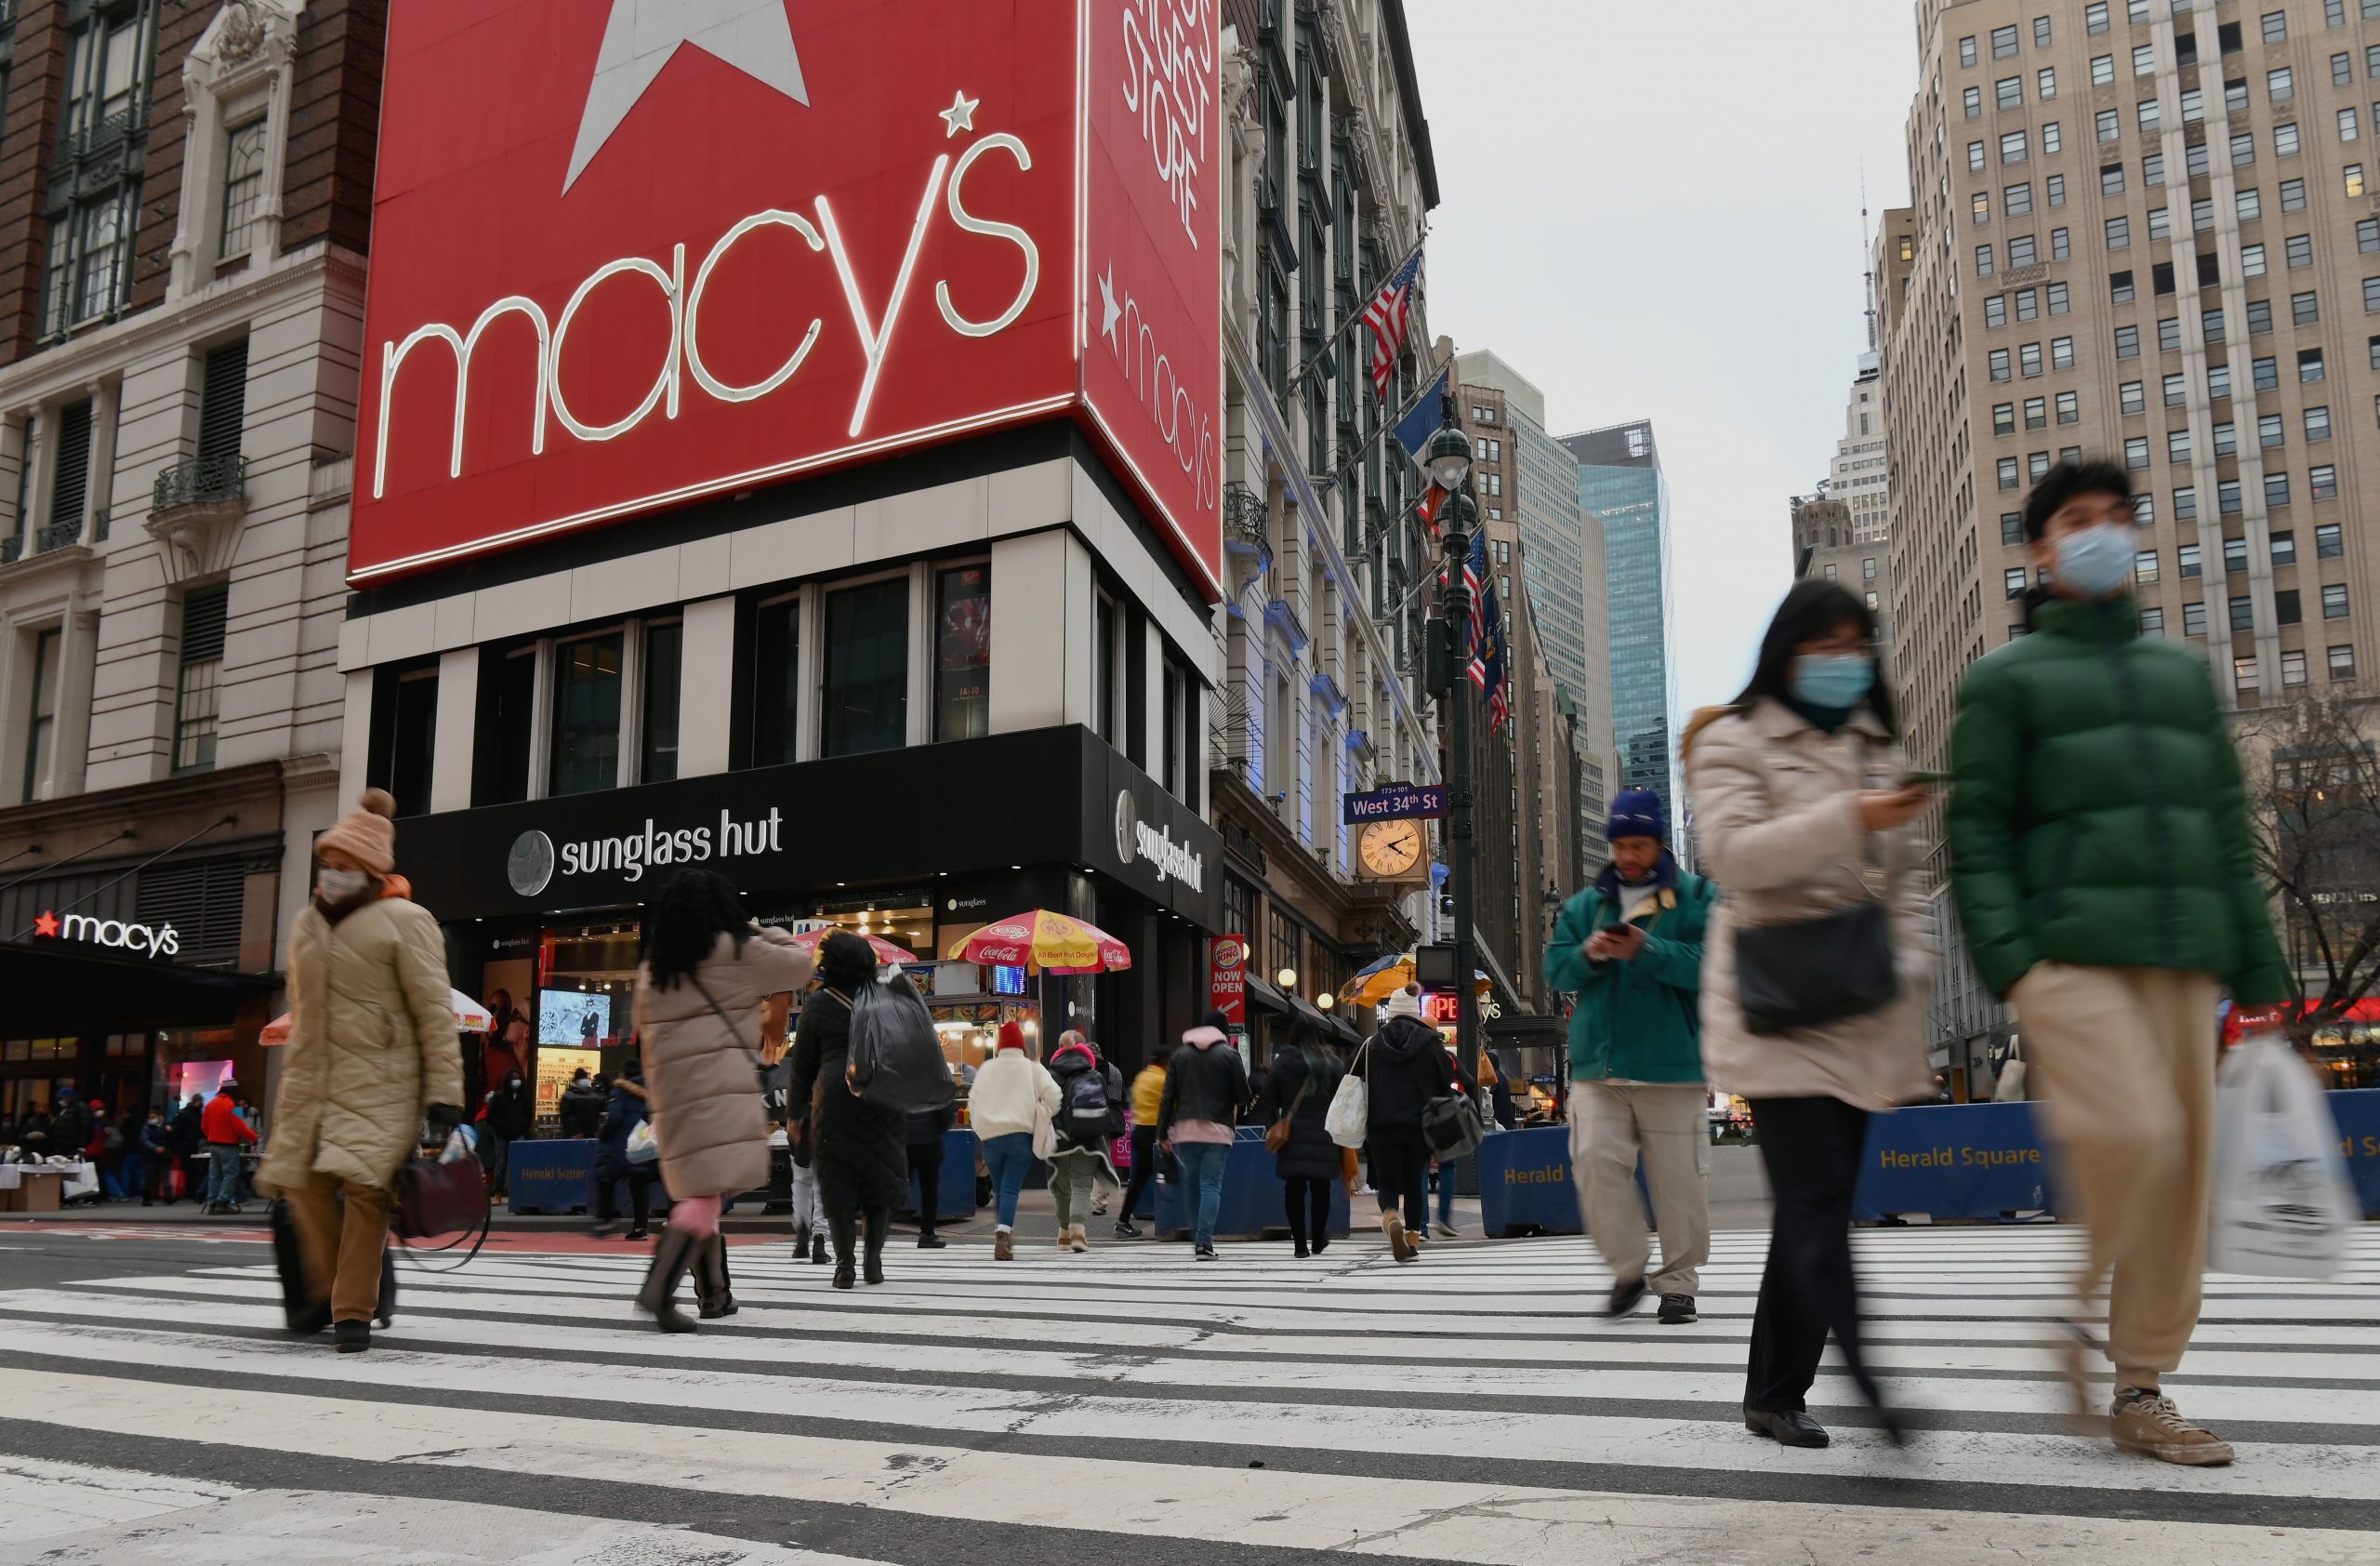 As more retailers turn to tech, Macy's store employees score victory in challenging self-checkout in mobile app